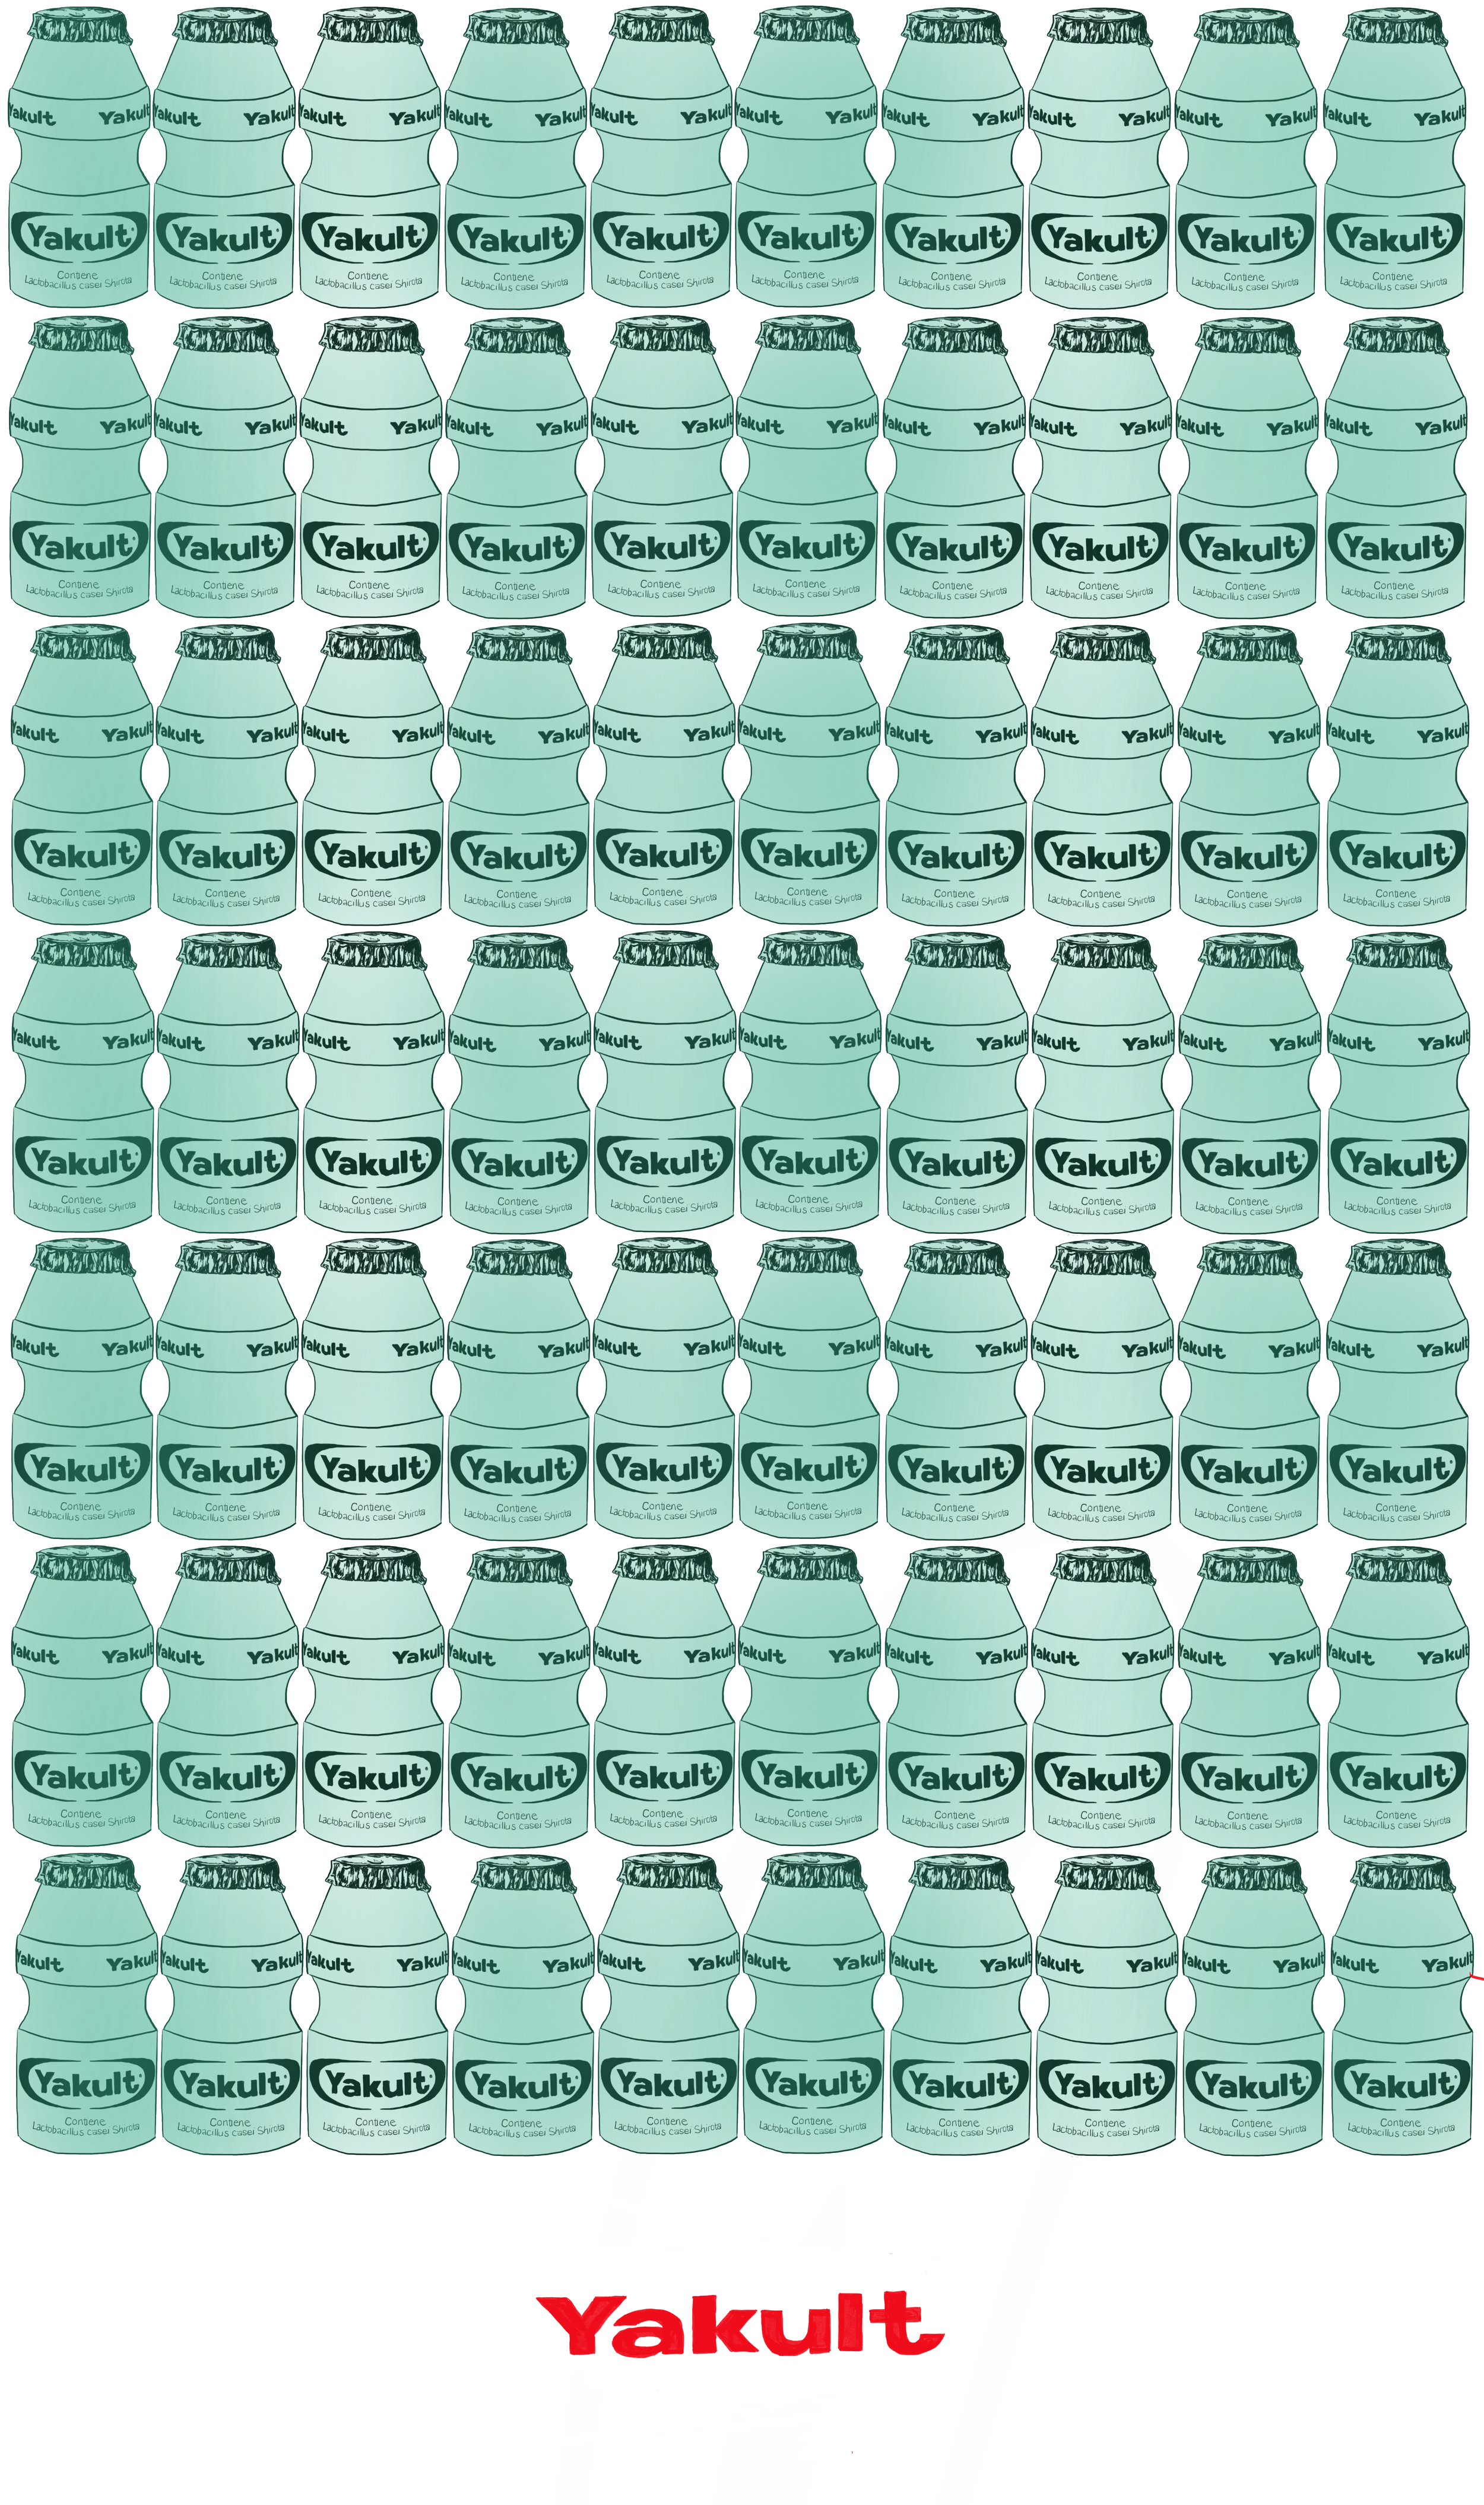 Green_Yakult_Containers copy.png